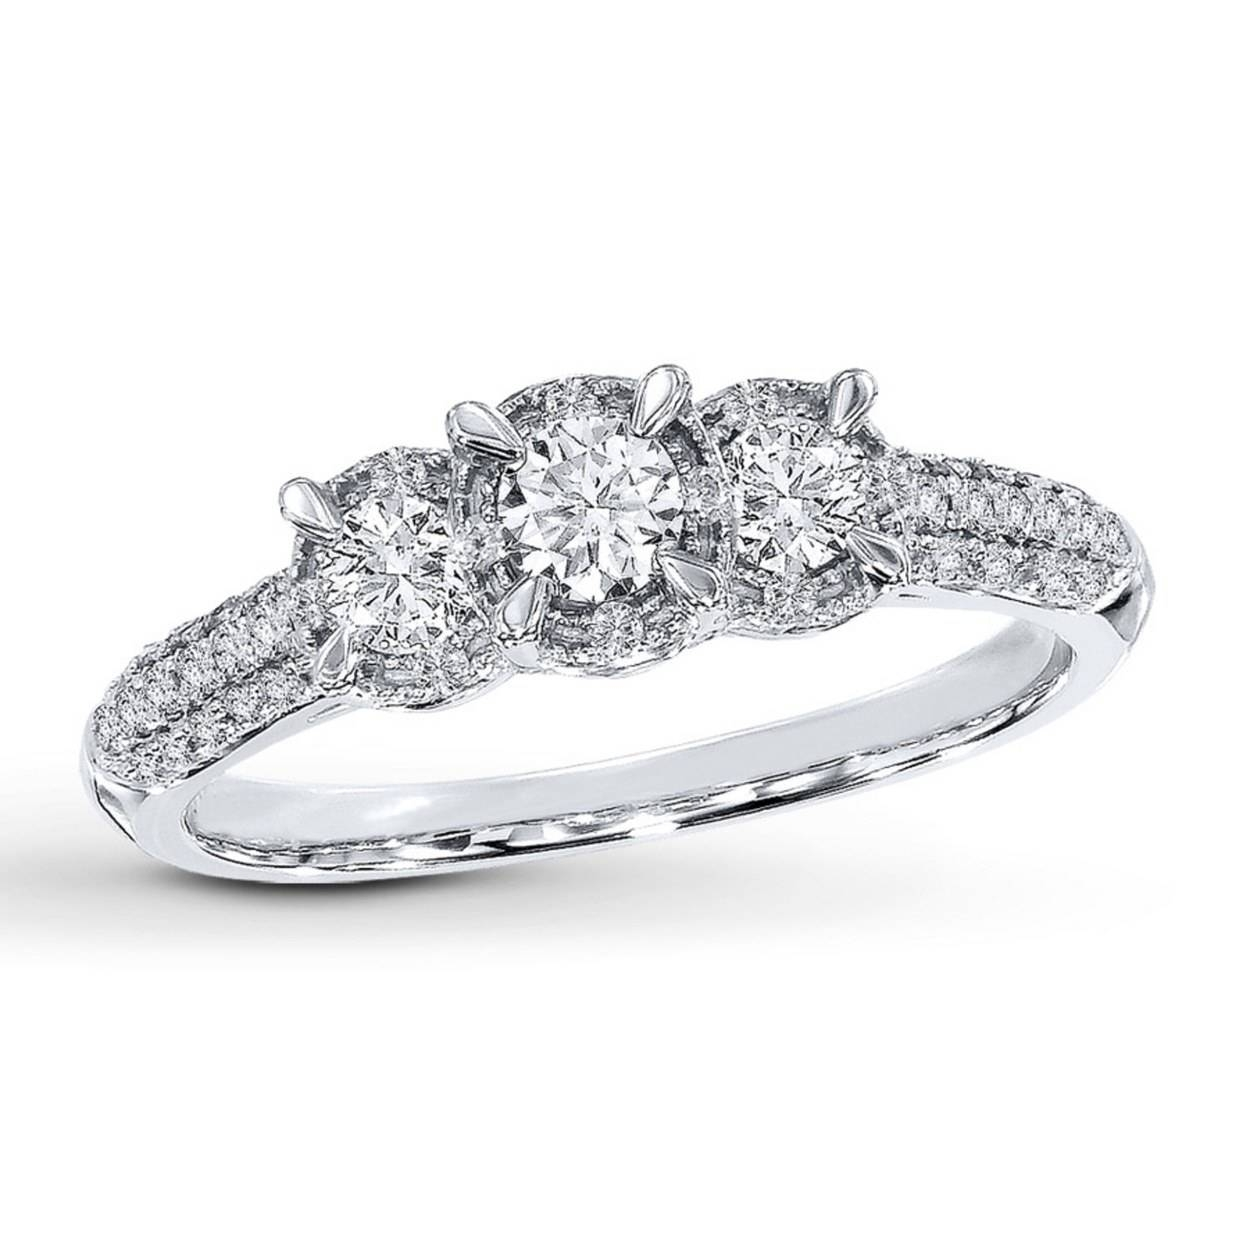 Diamond Engagement Ring. Diamond Engagement Rings Under 300 Regarding Diamond Engagement Rings Under 300 (Gallery 6 of 15)